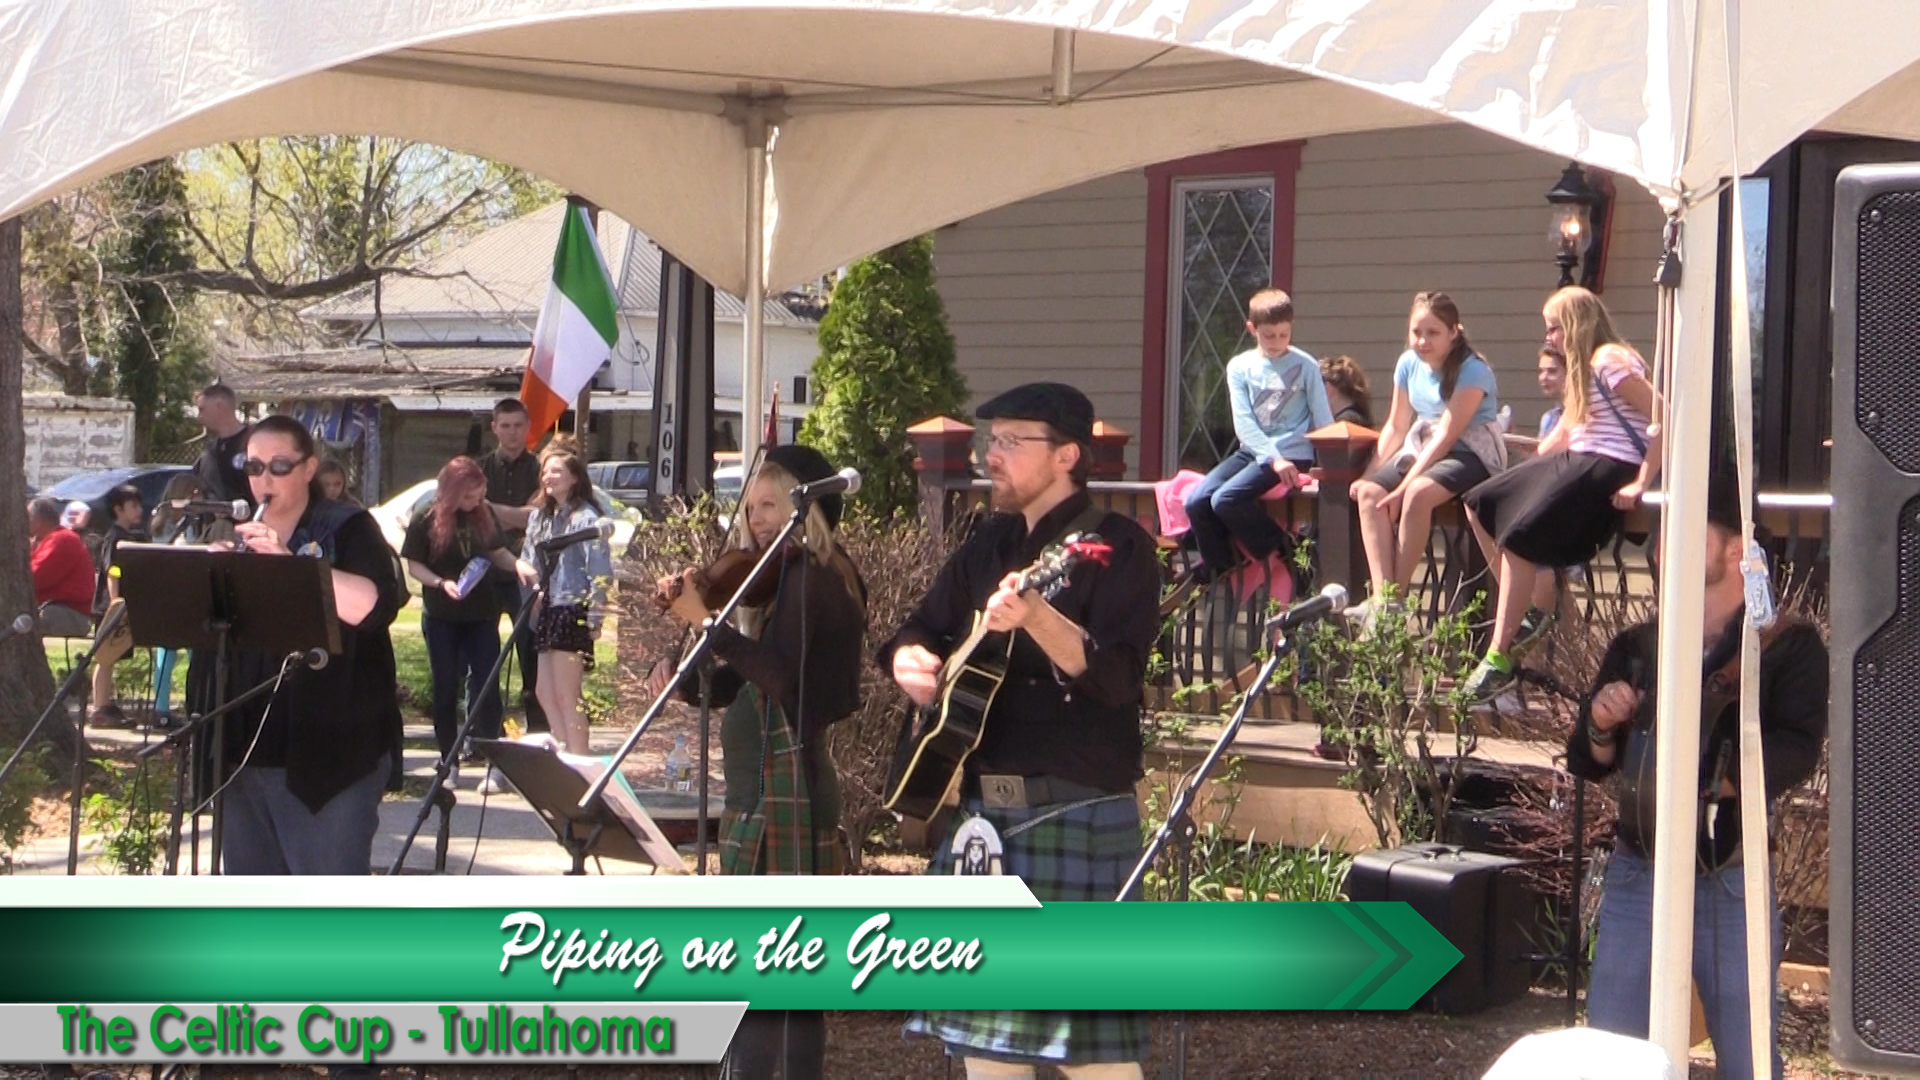 VIDEO - Piping on the Green in Tullahoma